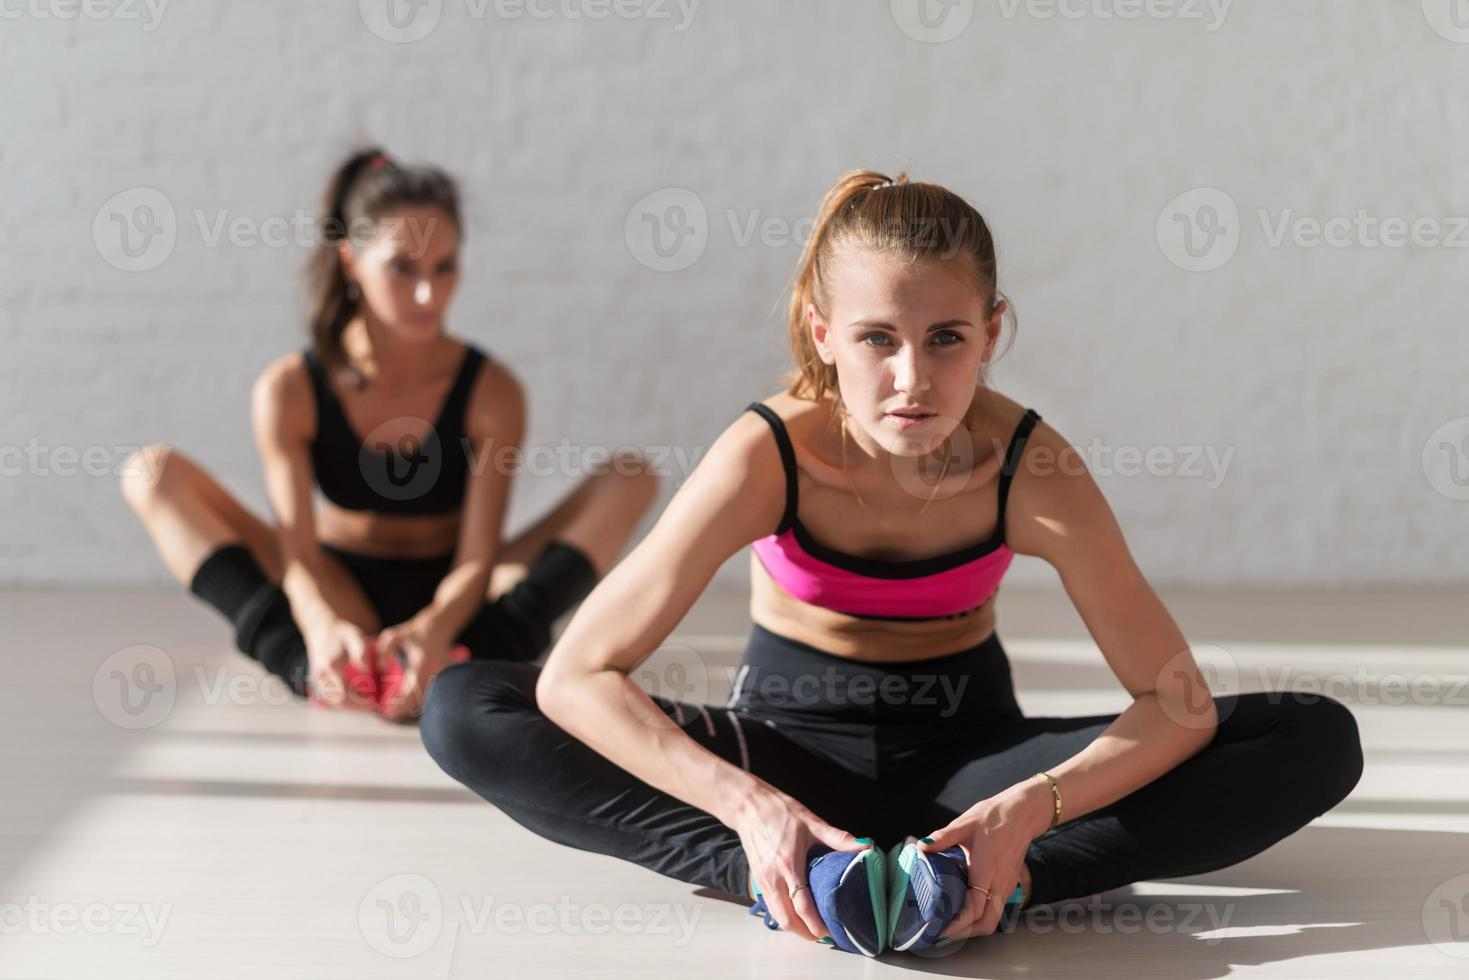 Two fit girls doing stretching exercise together sitting on the photo